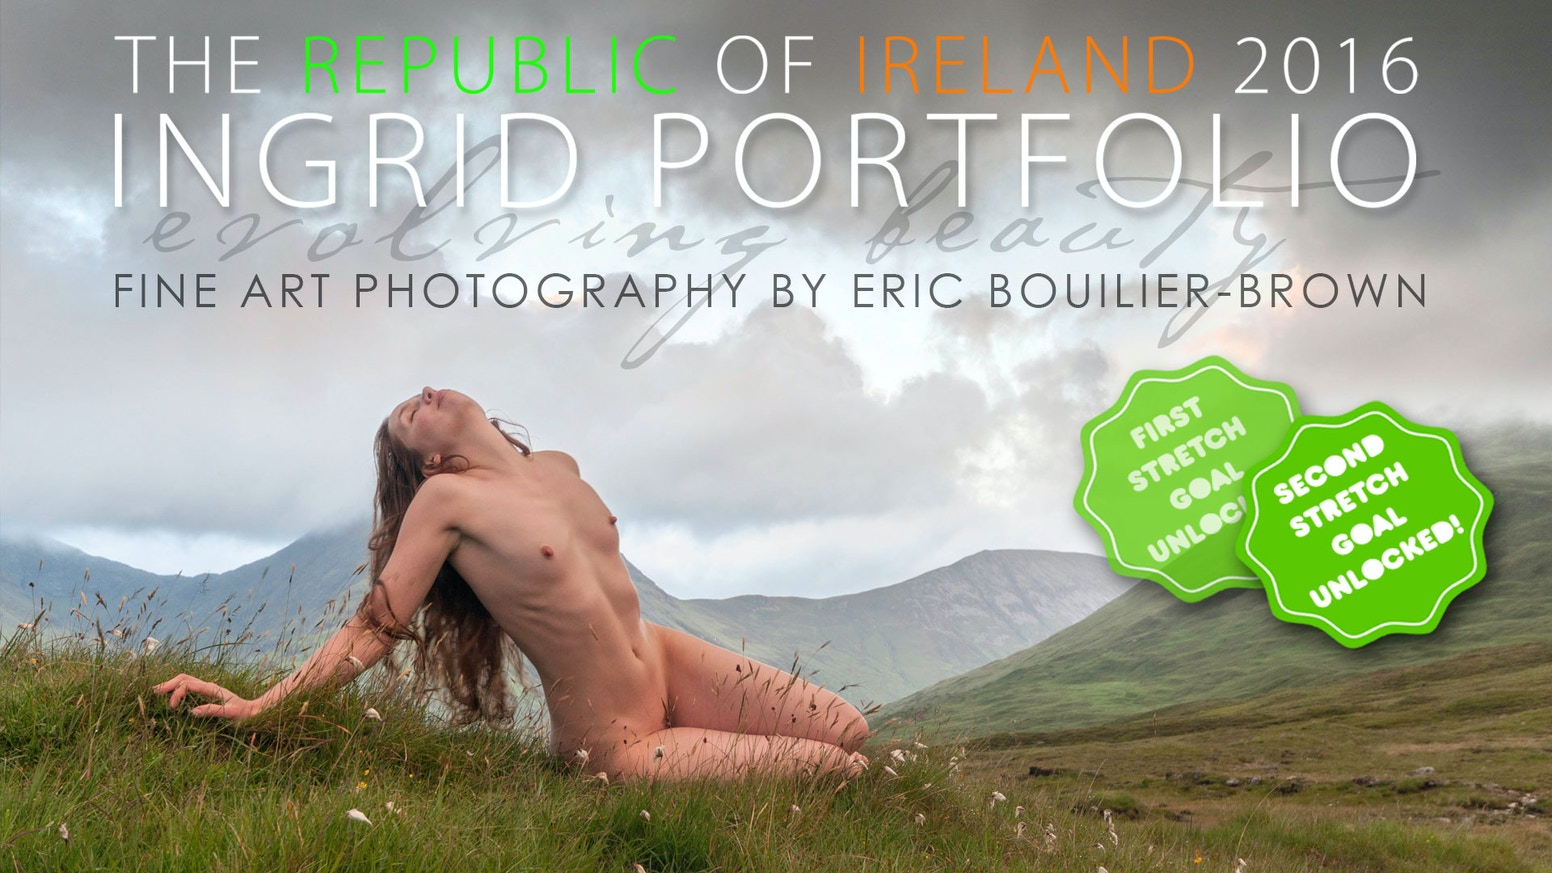 To mark 30 years of photography, I'm heading to Ireland with Ingrid, who's worked with me since 1998, to create a new body of work.